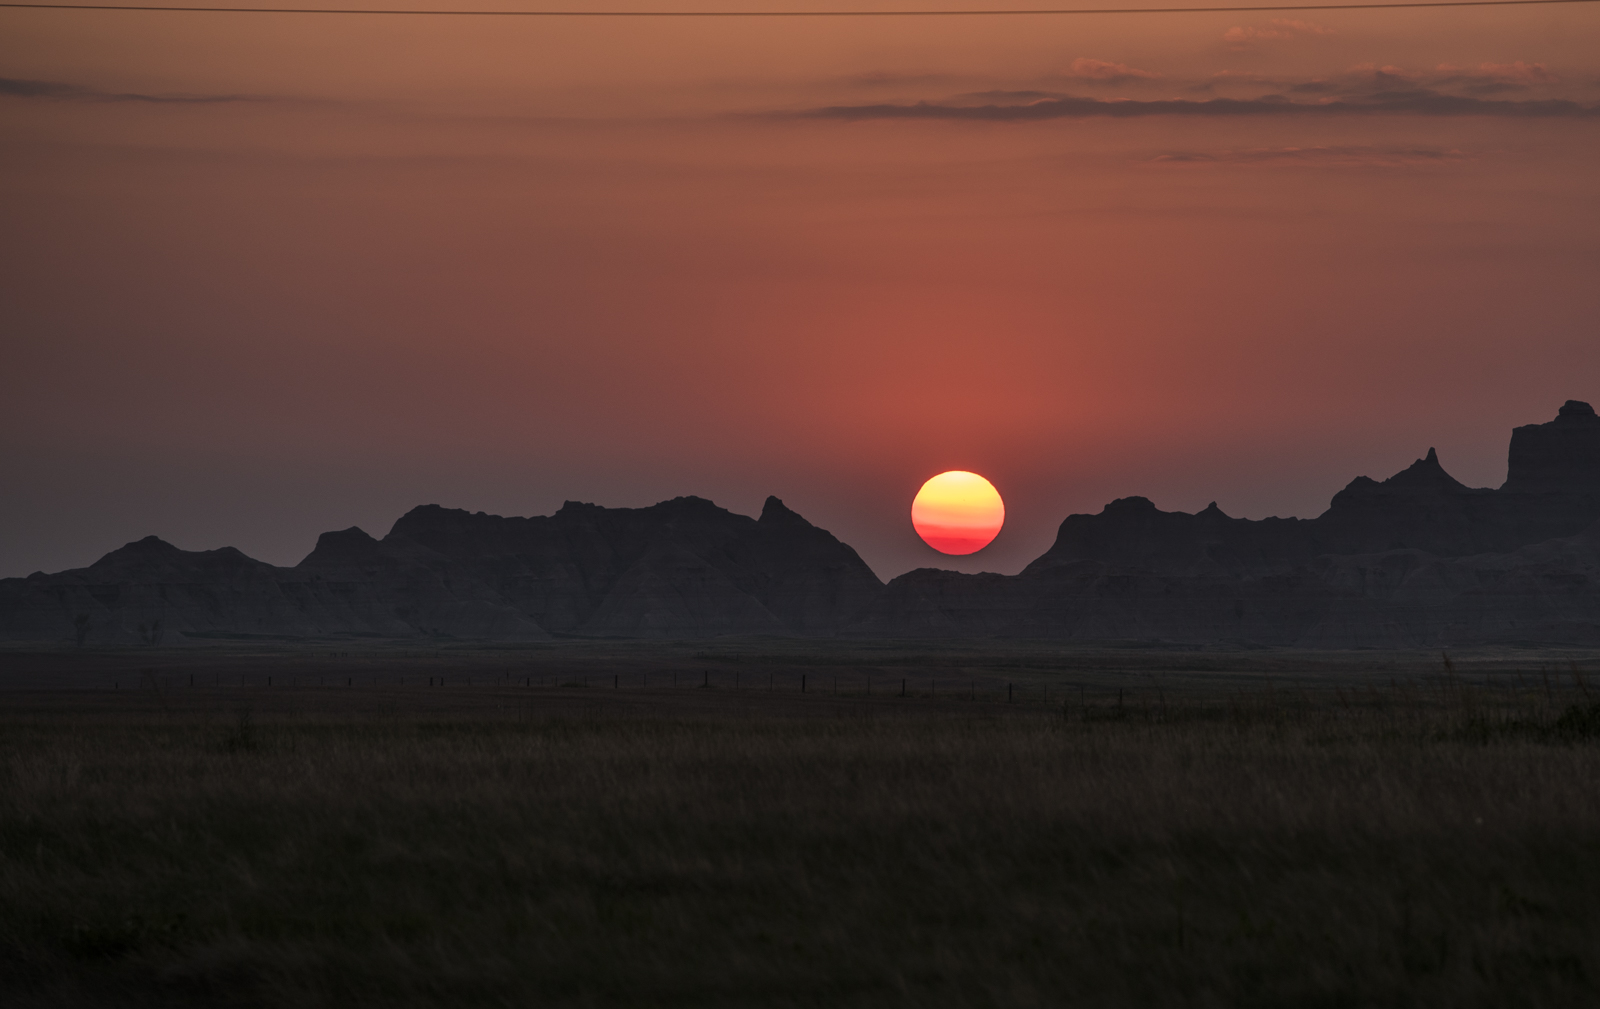 Sunset over the Badlands National Park.